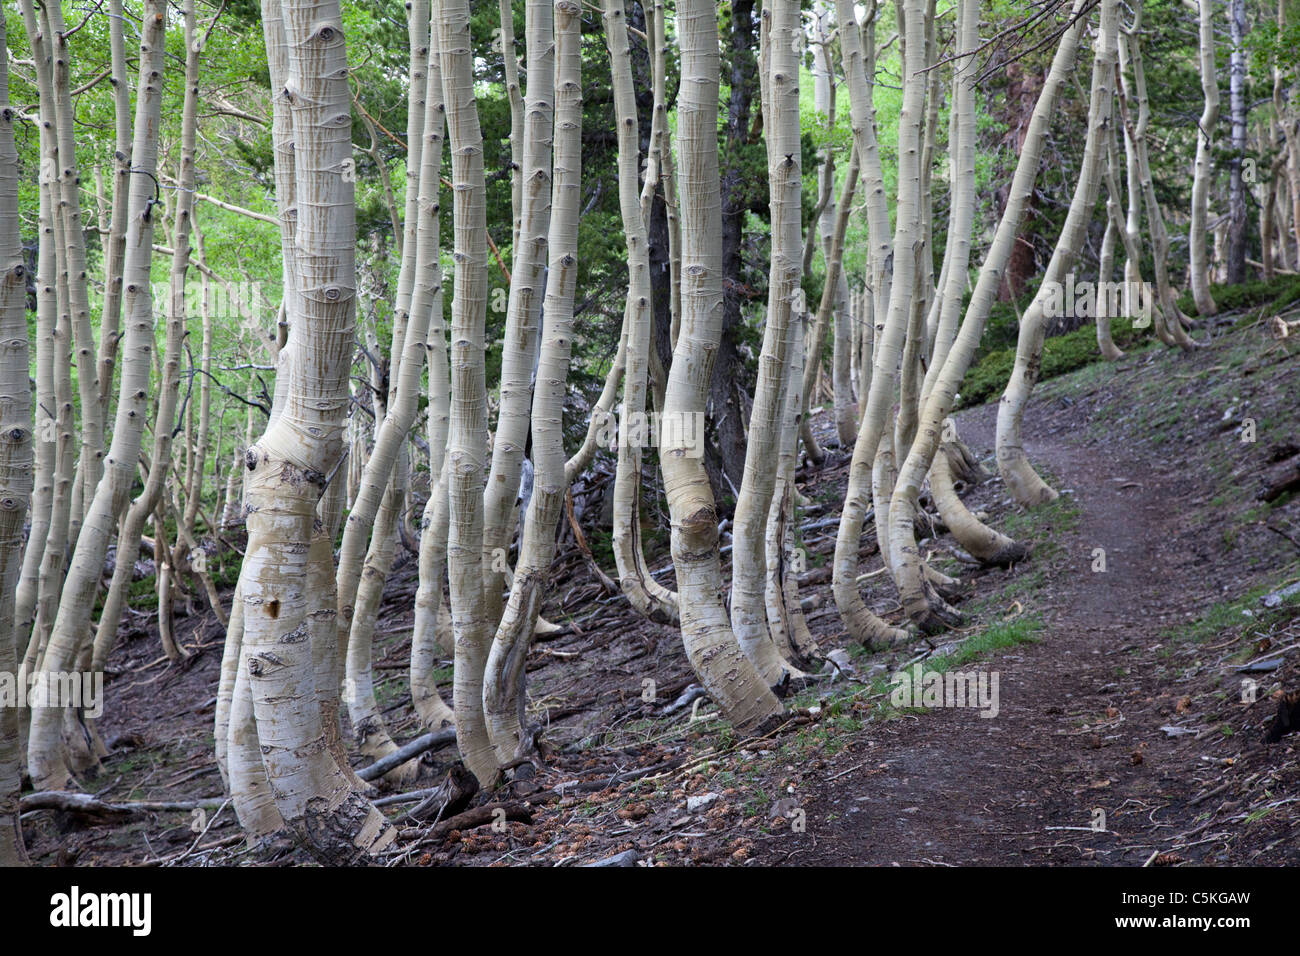 Baker, Nevada - Crooked aspen trees along a trail in Great Basin National Park. - Stock Image